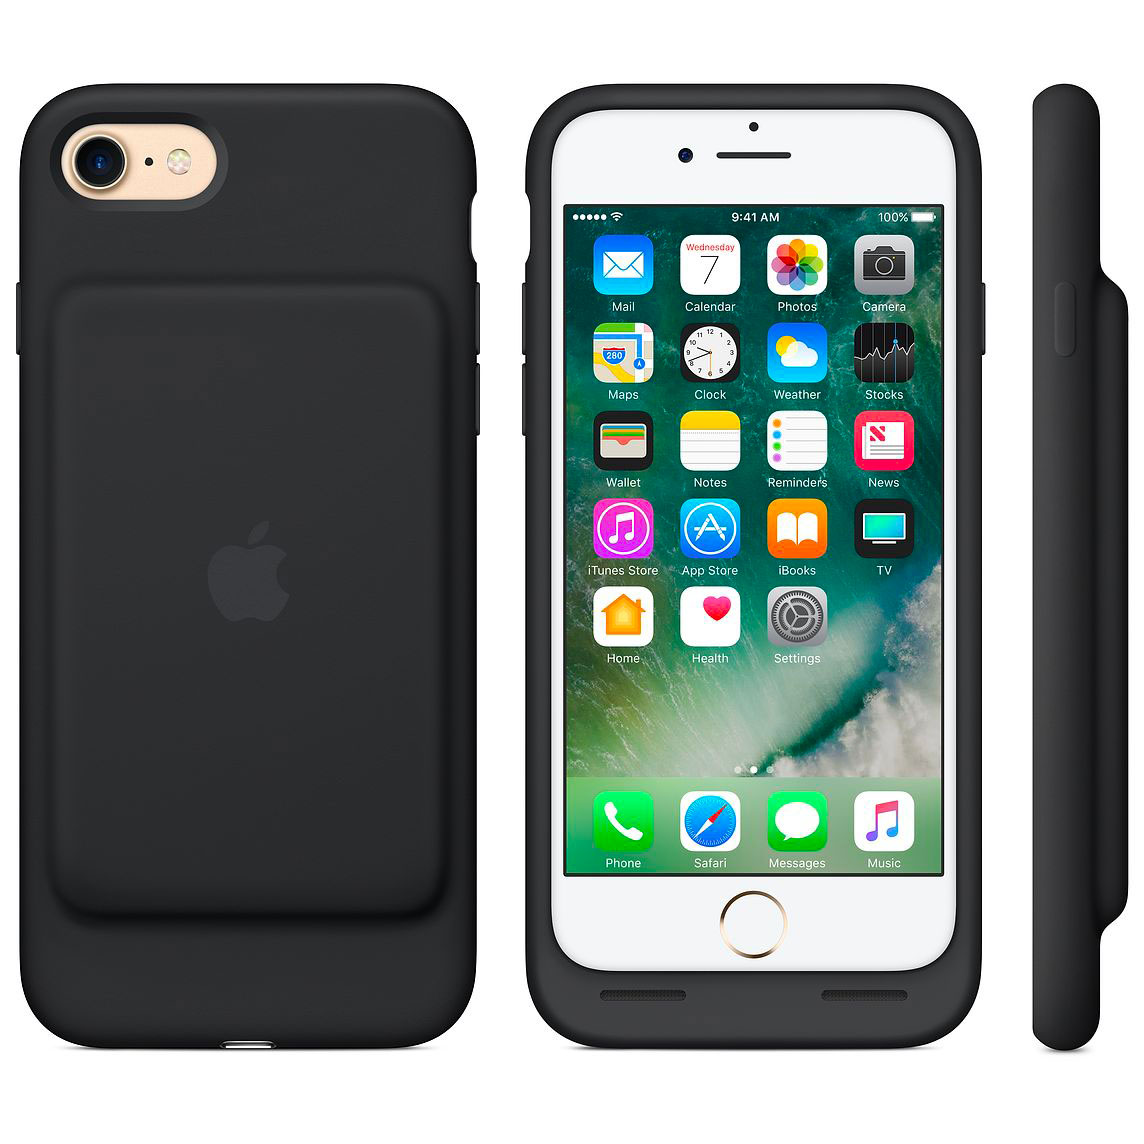 La Smart Battery Case nella variante di colore nero per l'iPhone 7